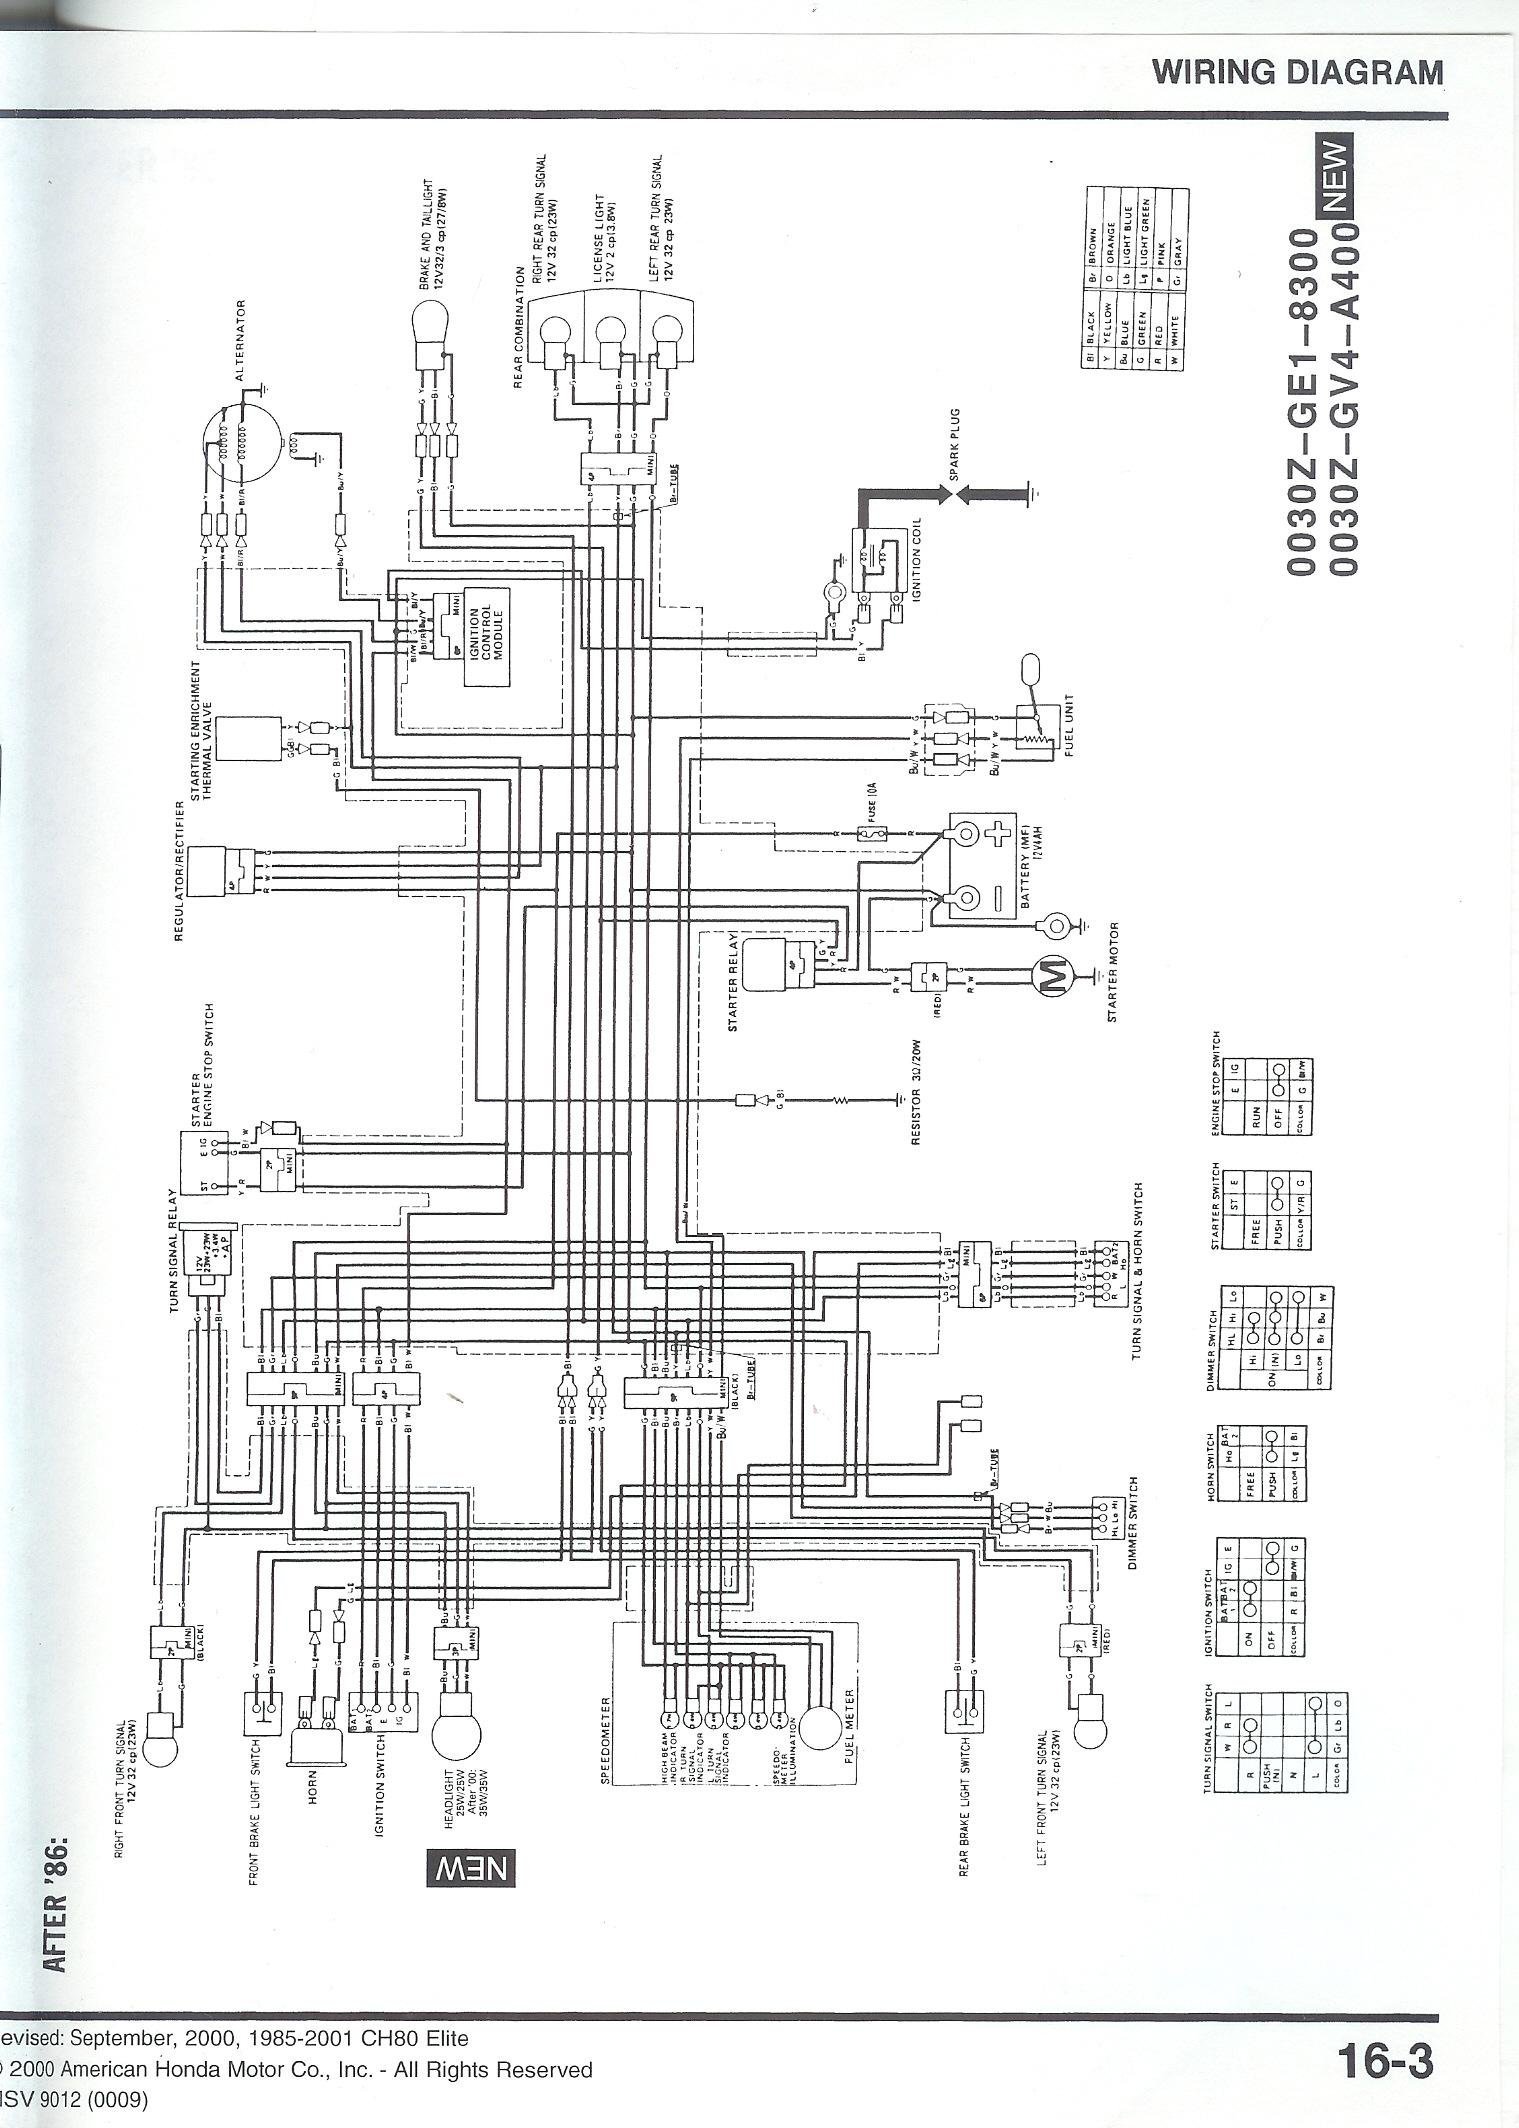 hight resolution of 80 ct70 wire diagram honda 80 wiring diagram wiring diagram namehonda elite 80 wiring diagram my wiring diagram honda 80